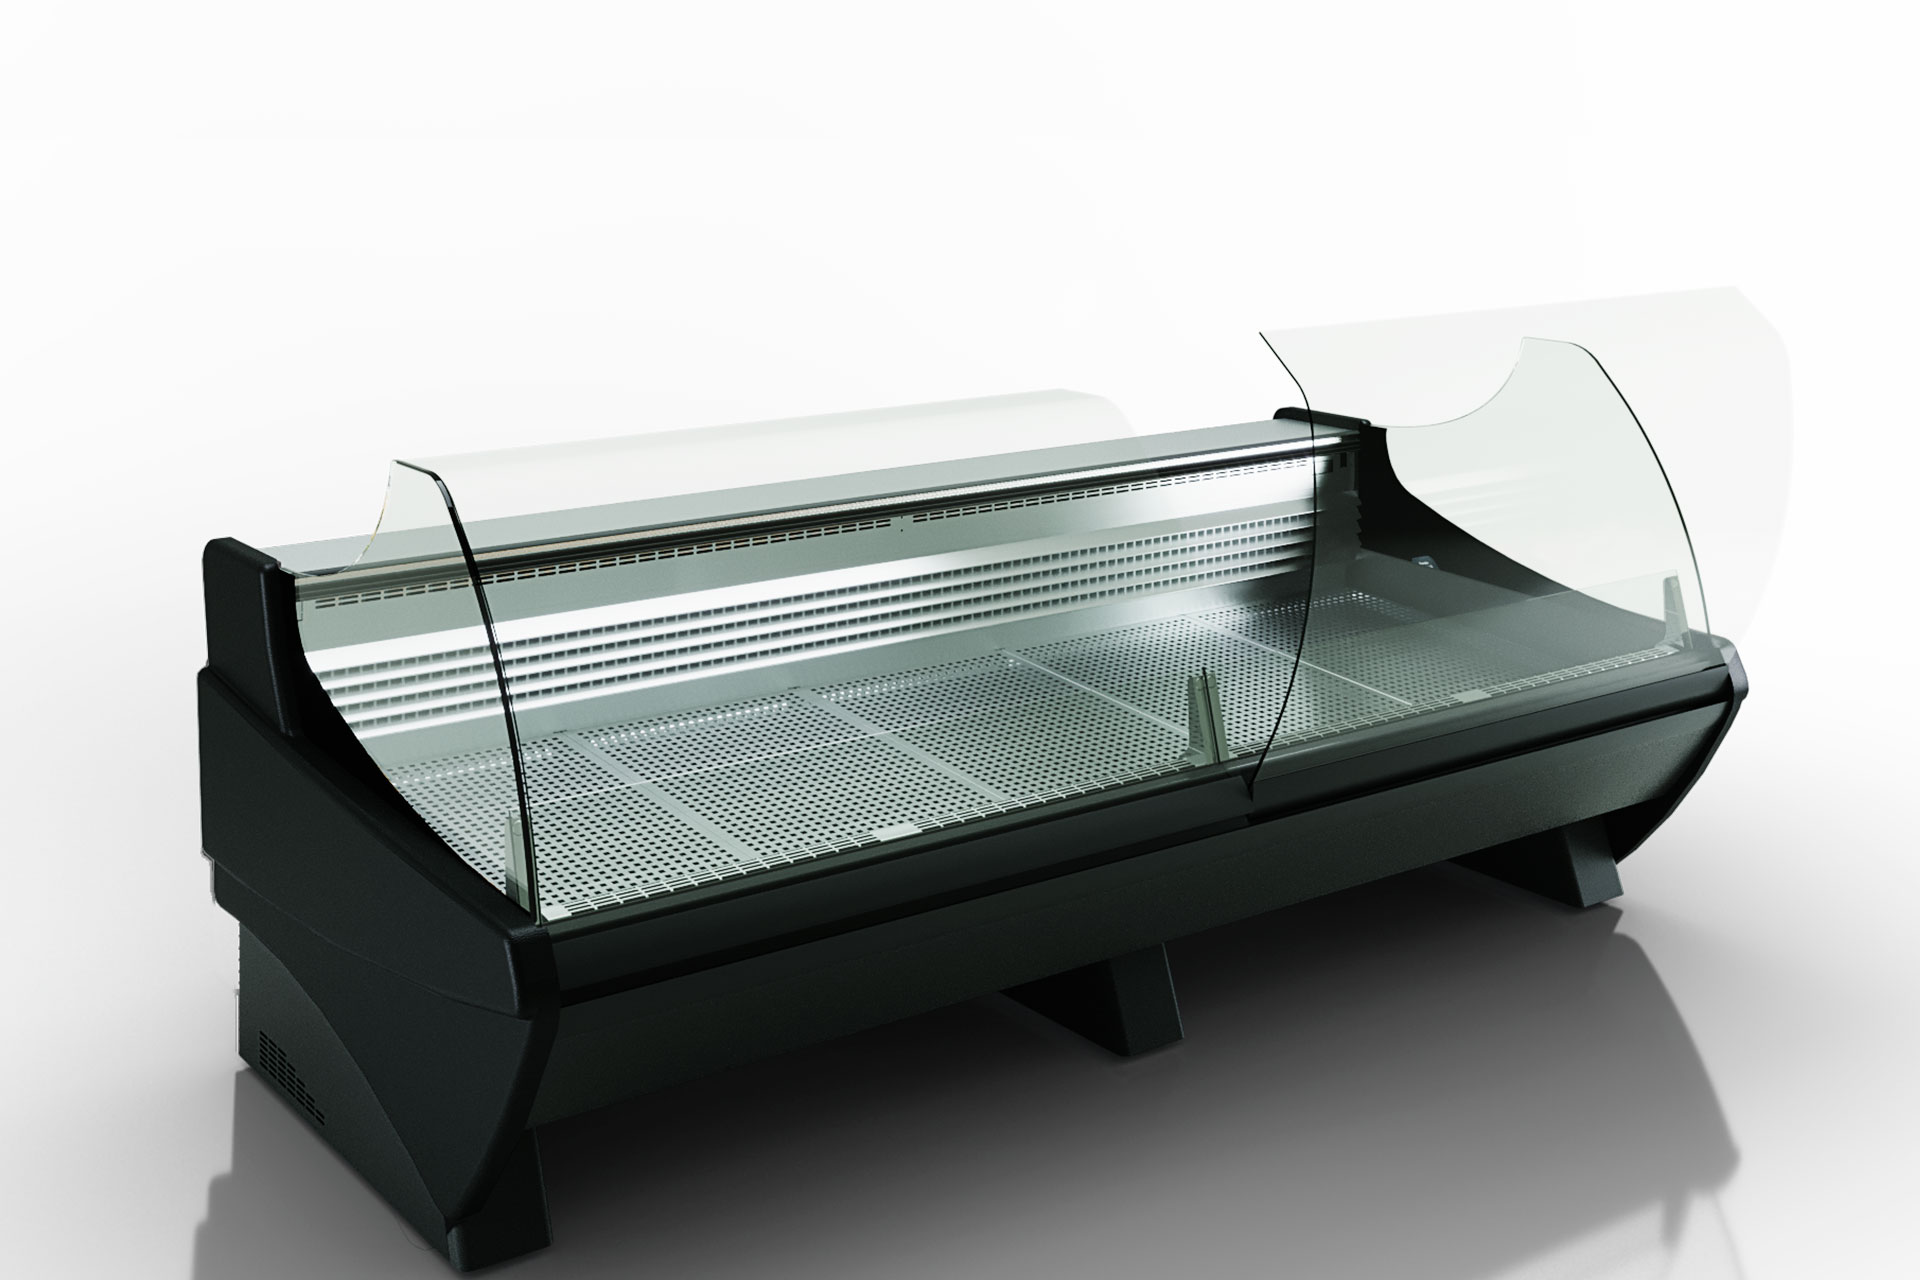 Counter Symphony luxe MG 120 fish T 110-SLM